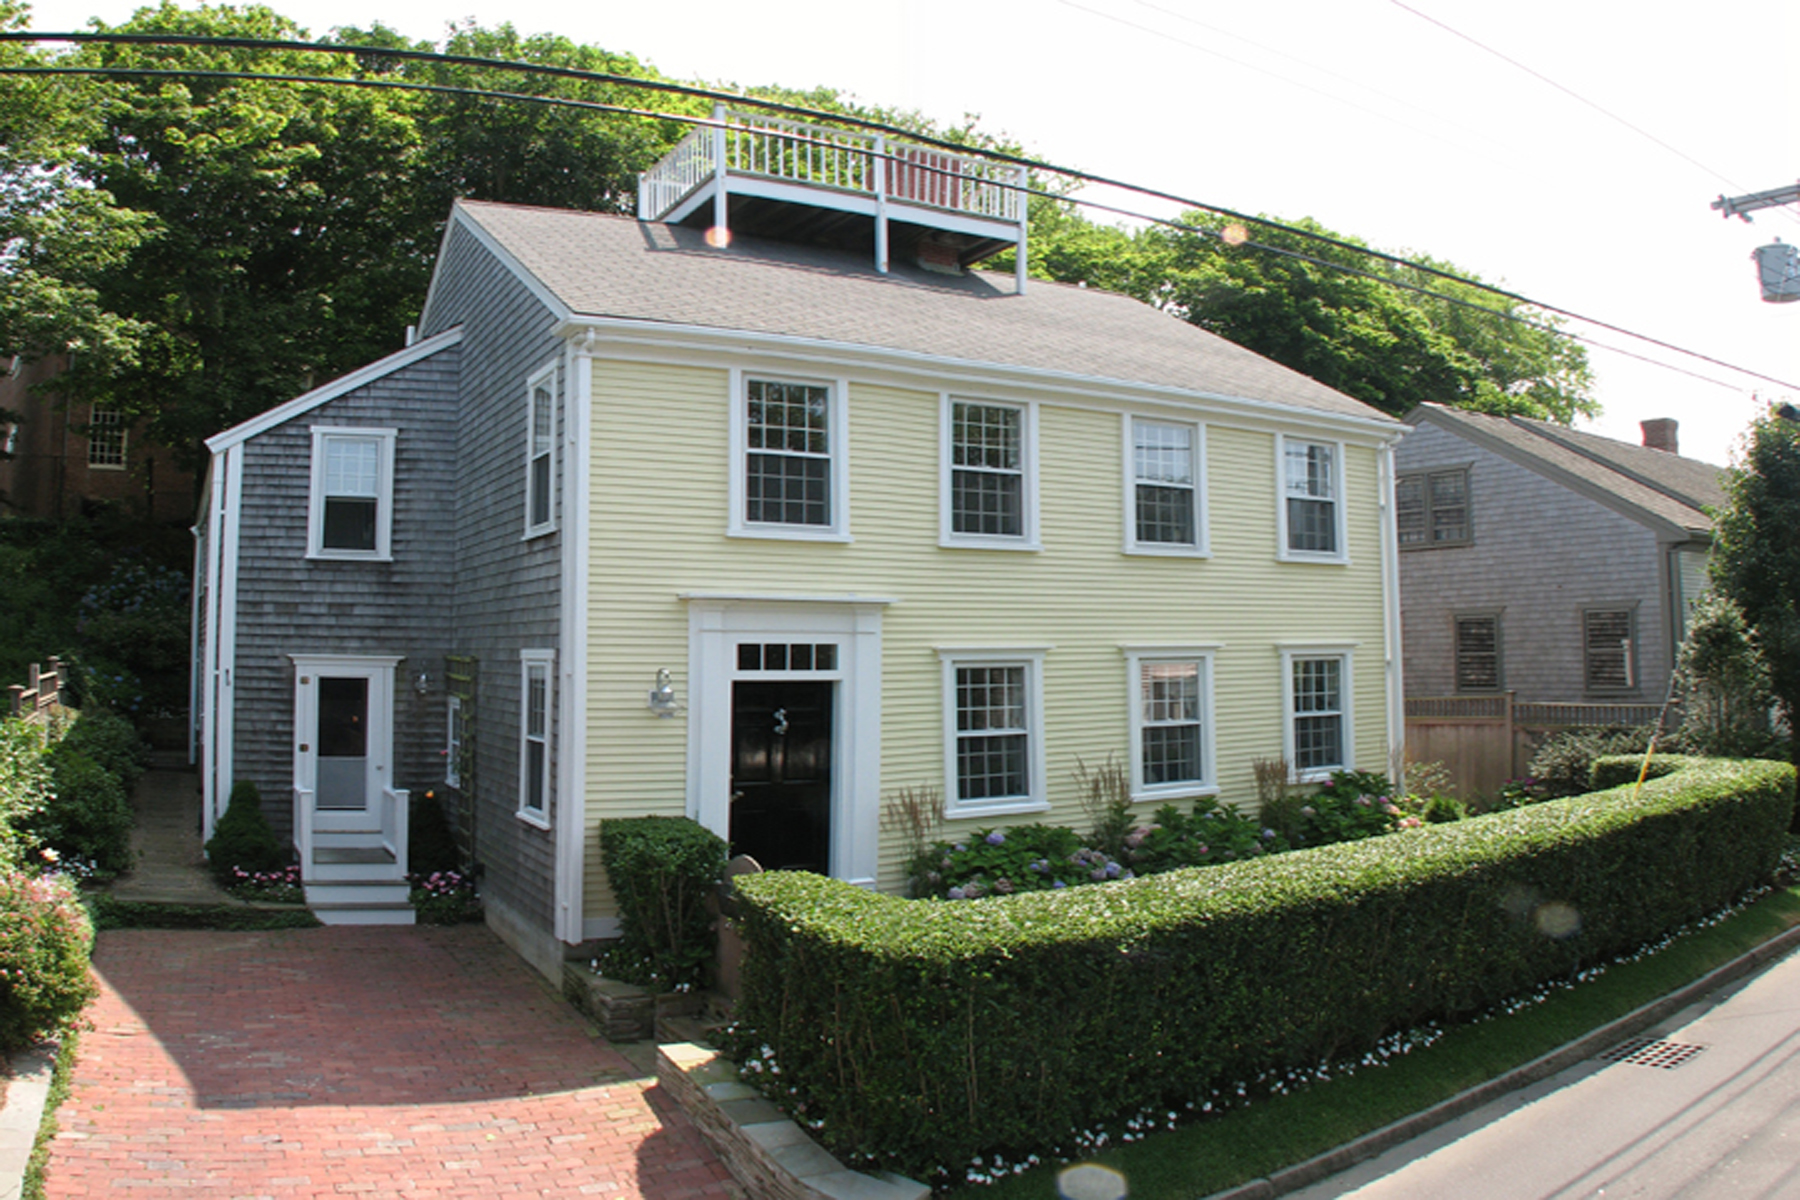 Single Family Home for Sale at Beautiful in Old Historic District 17 Lily Street Nantucket, Massachusetts, 02554 United States